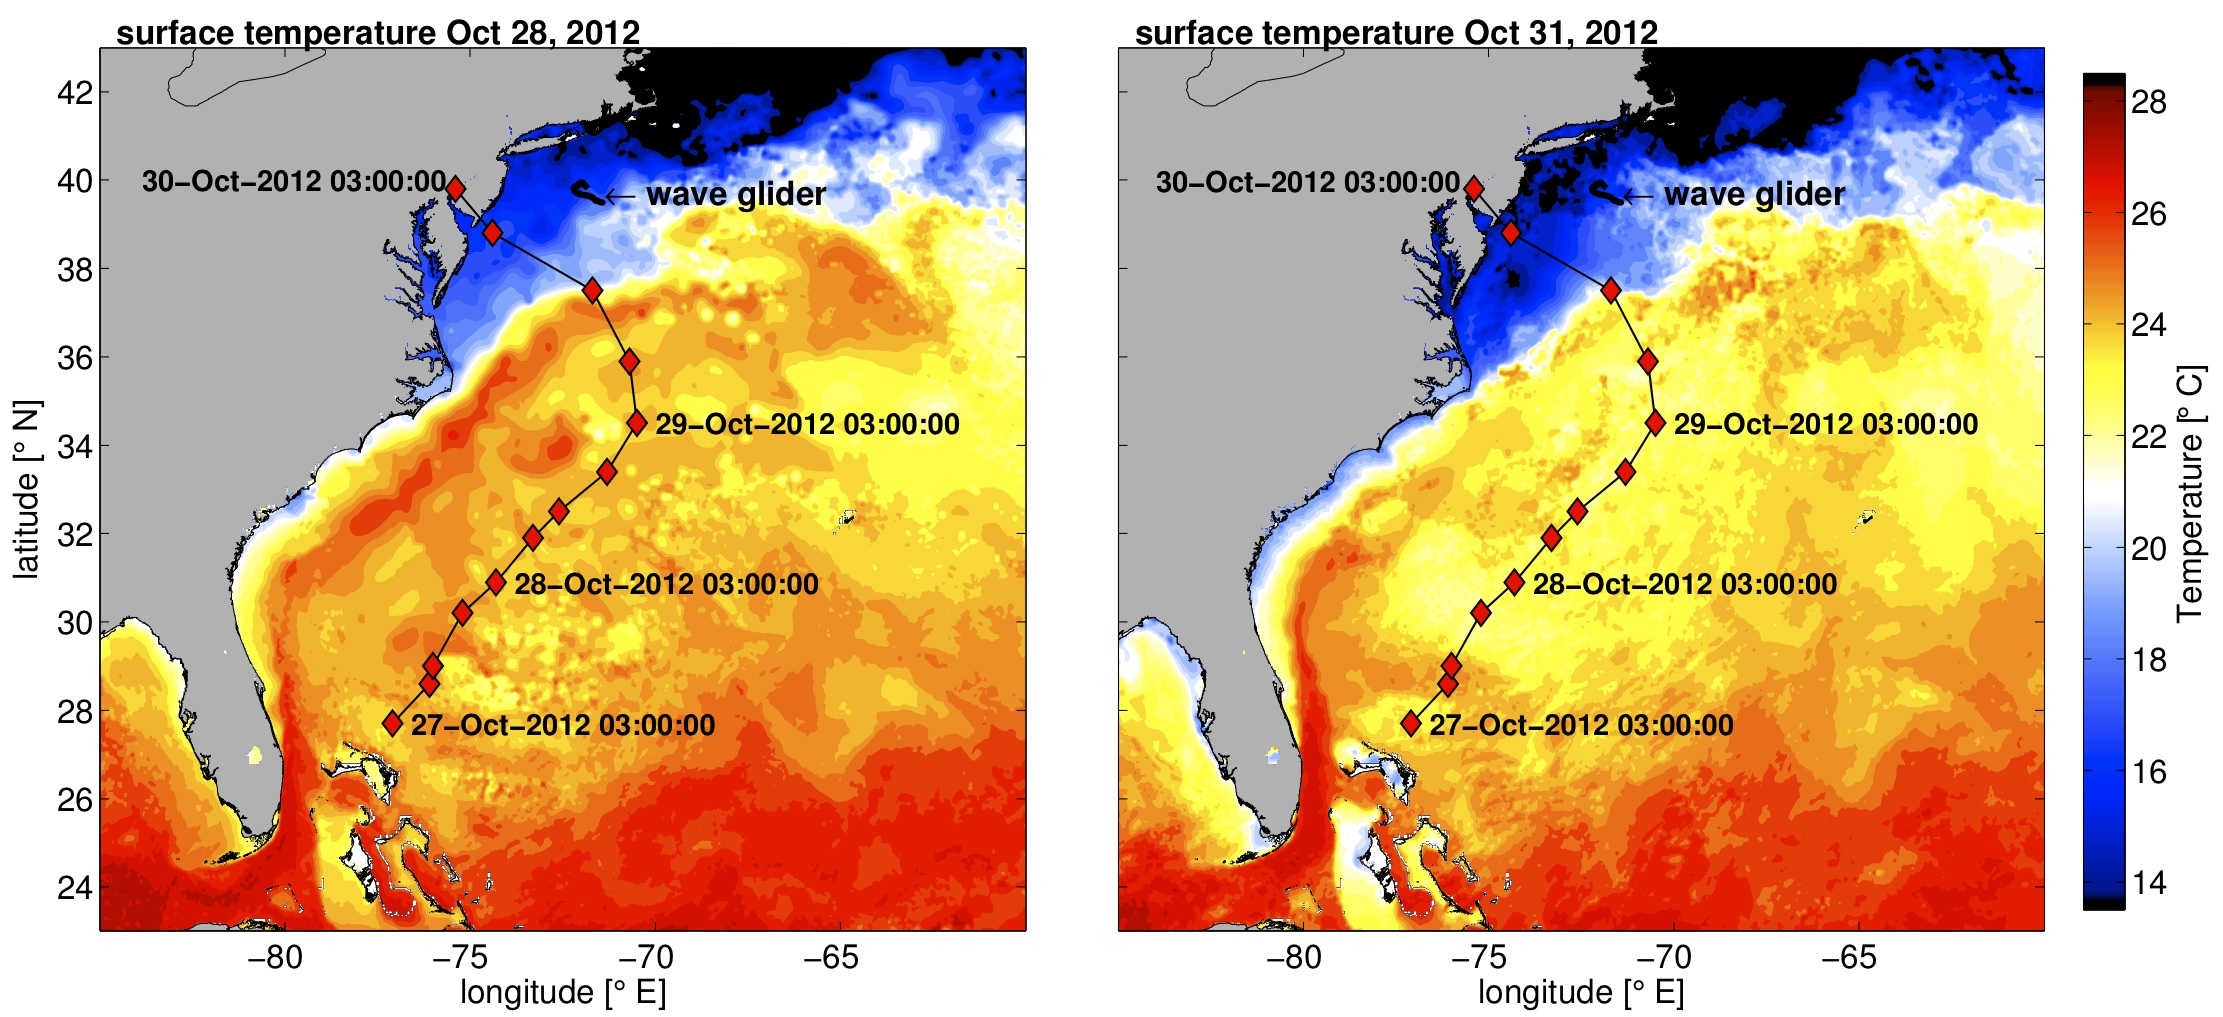 Sea surface temperatures before and after Sandy hit land. As Sandy moved northward it mixed colder deep water up, causing widespread cooling of the surface ocean off the Mid-Atlantic coast.